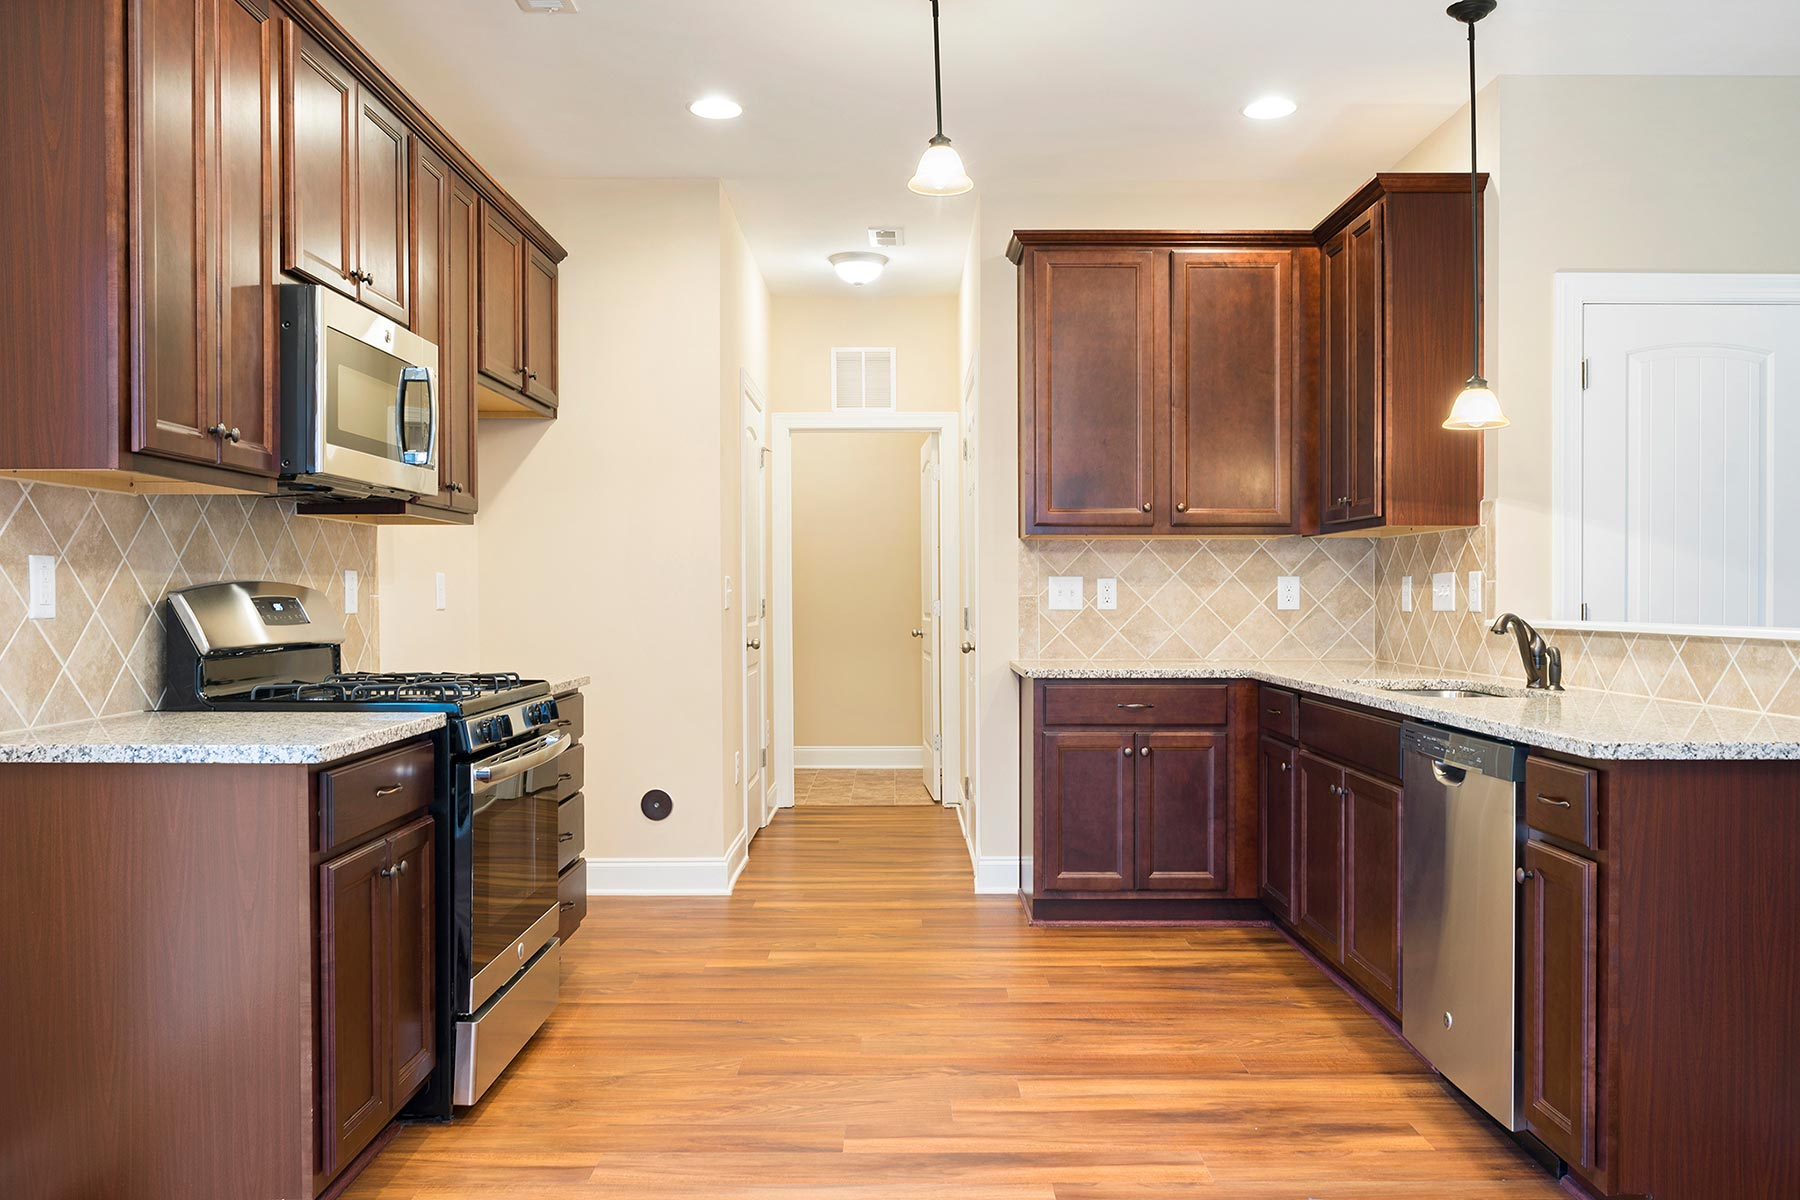 Franklin Plan Kitchen at Bristol in Clayton North Carolina by Mattamy Homes